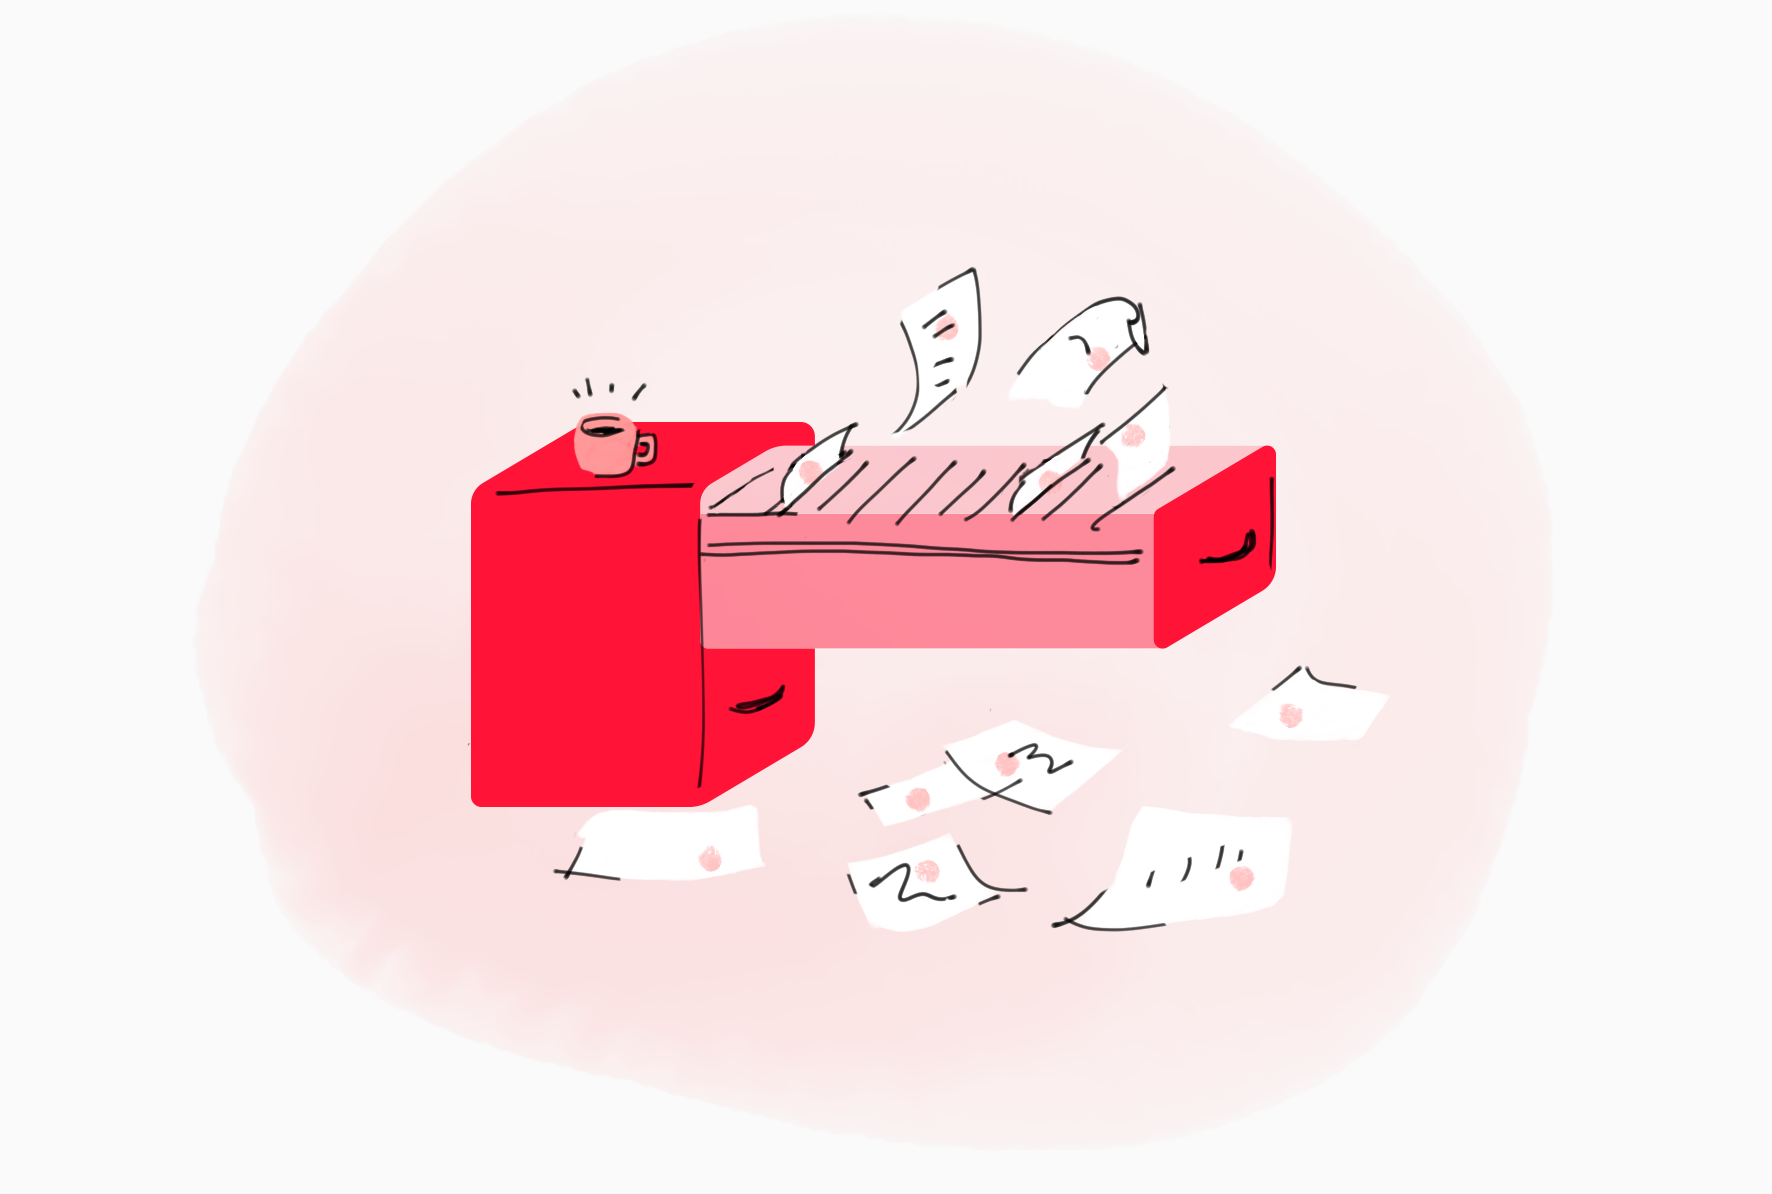 An illustration of a filing cabinet that has been flung open and has papers dramatically flying out from inside of it.